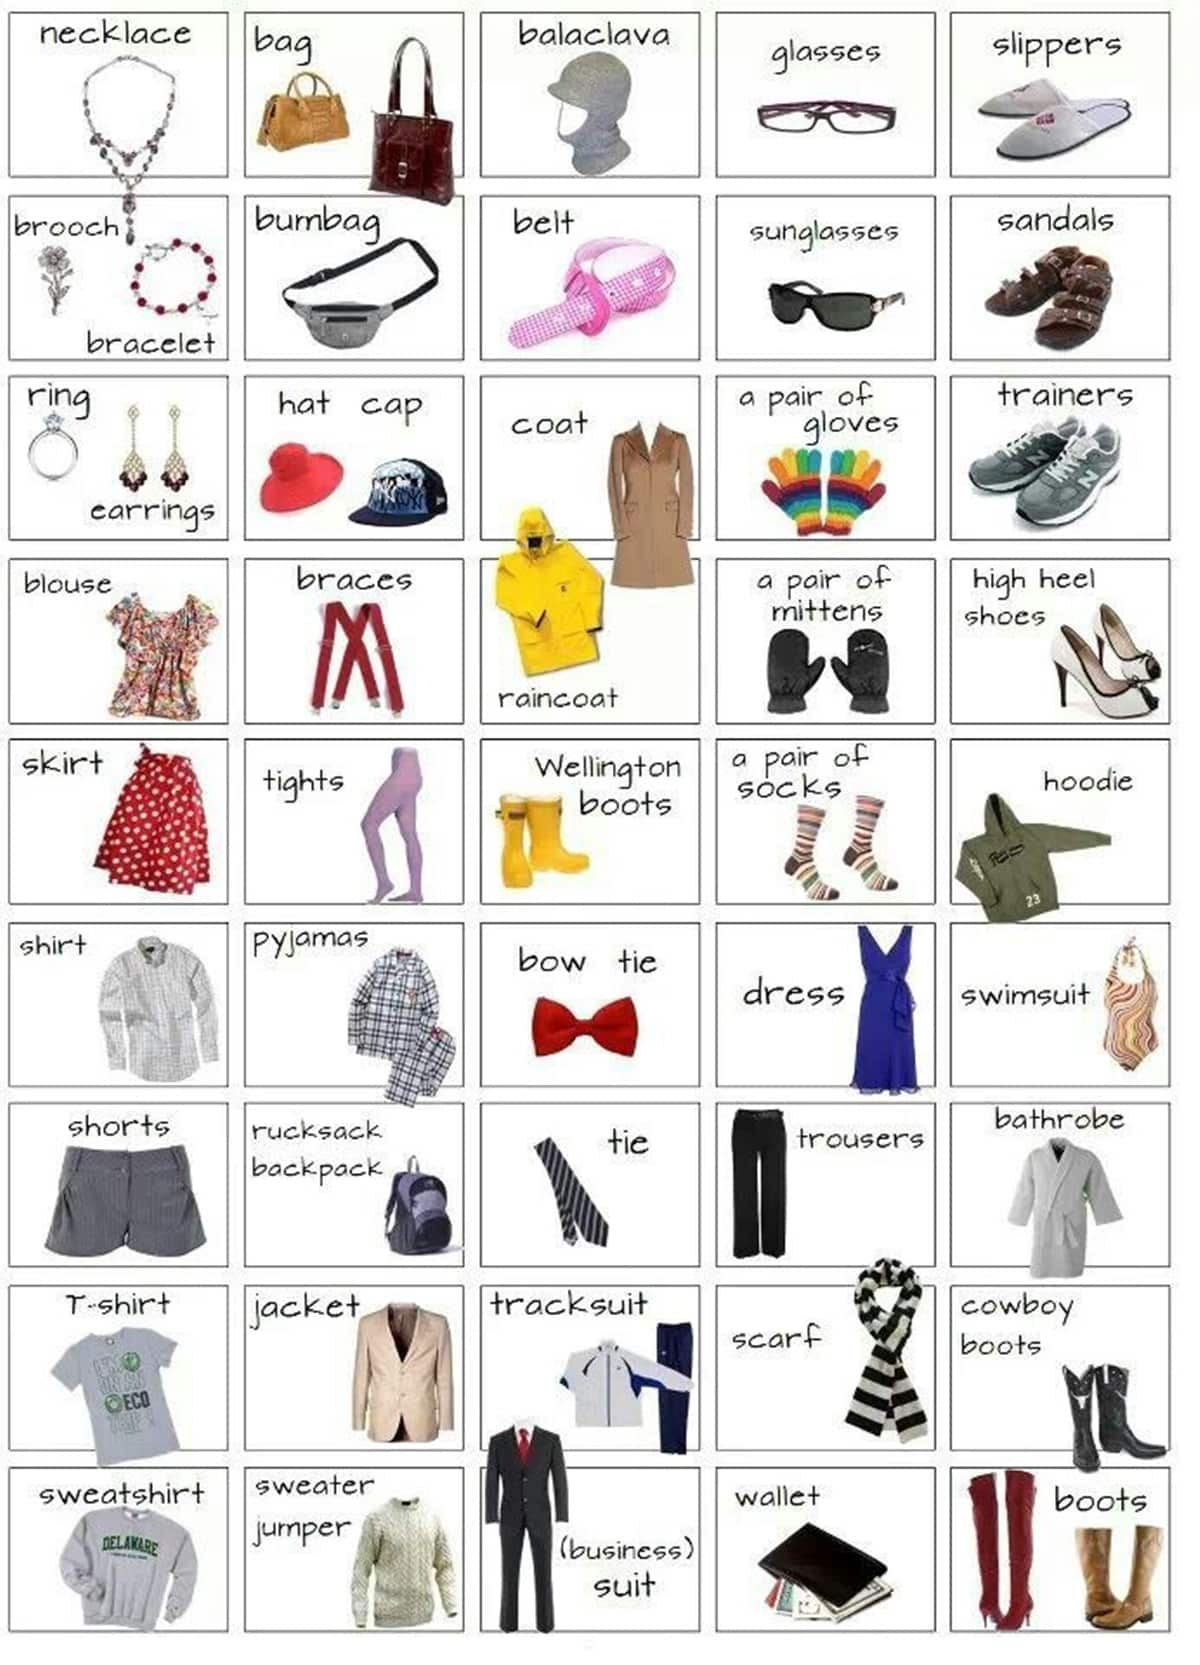 """""""Clothes and Fashion Accessories"""" Vocabulary in English"""